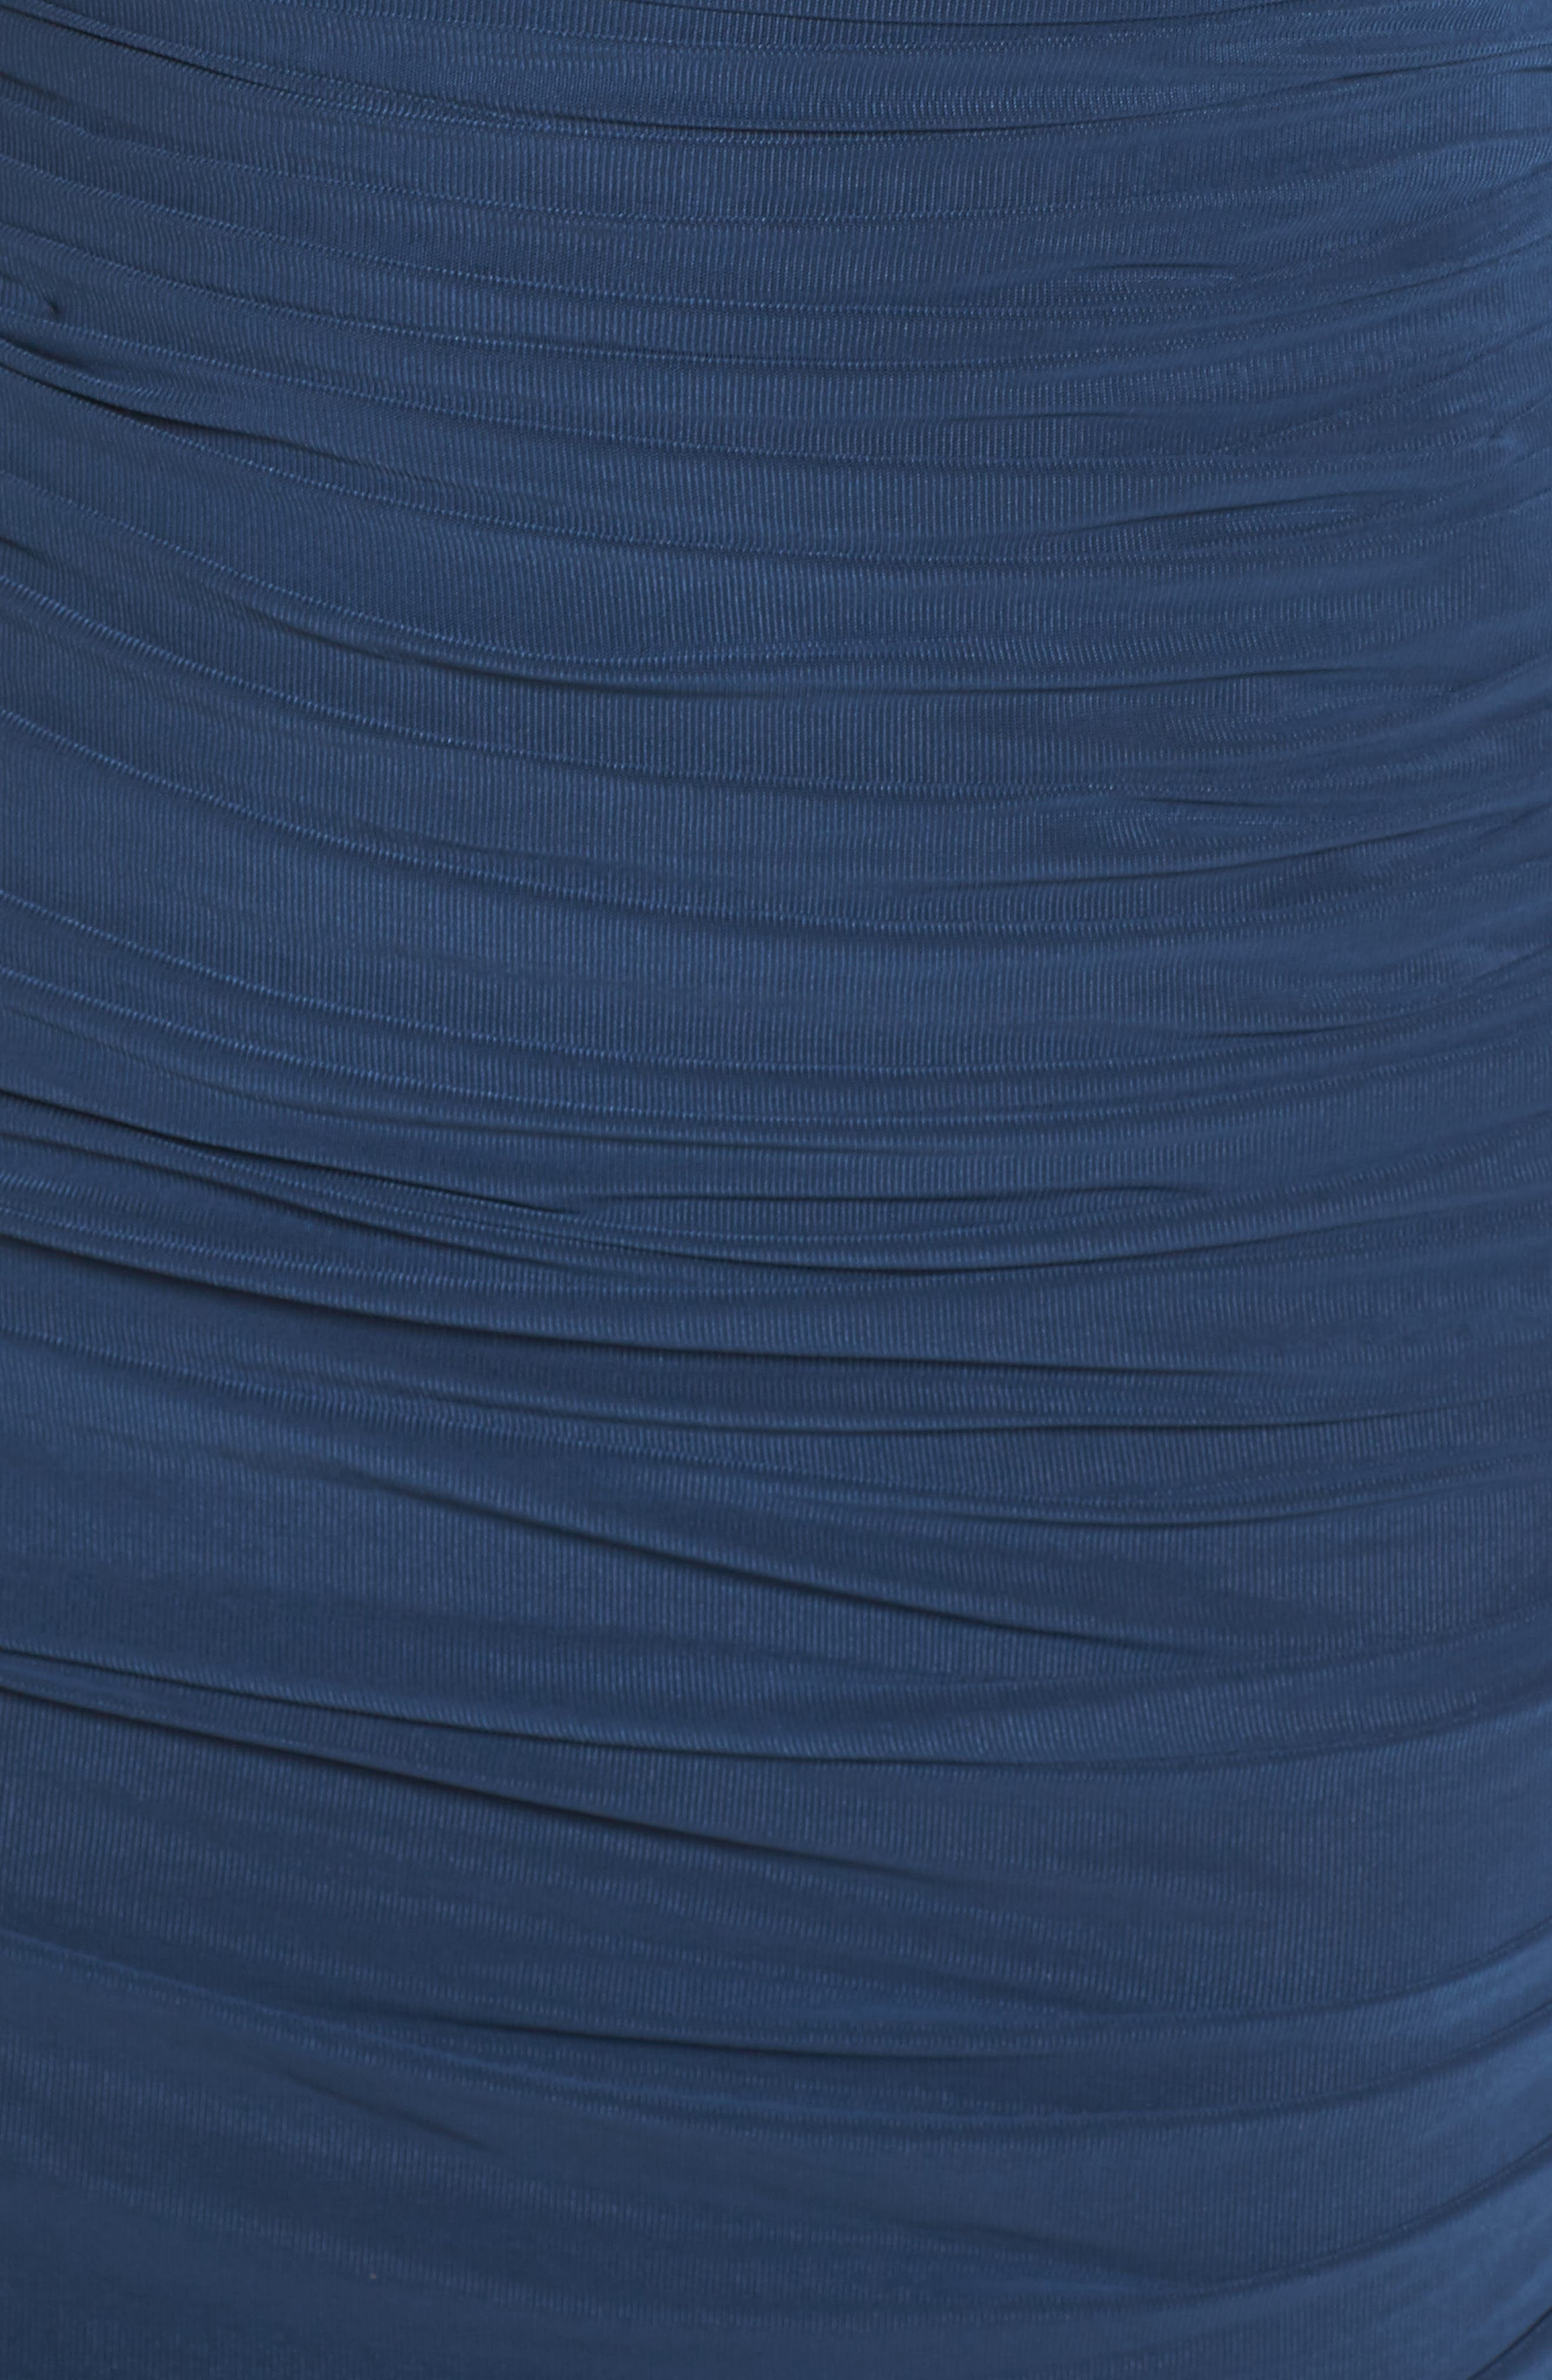 Embellished Mesh Ruched Jersey Gown,                             Alternate thumbnail 5, color,                             Navy